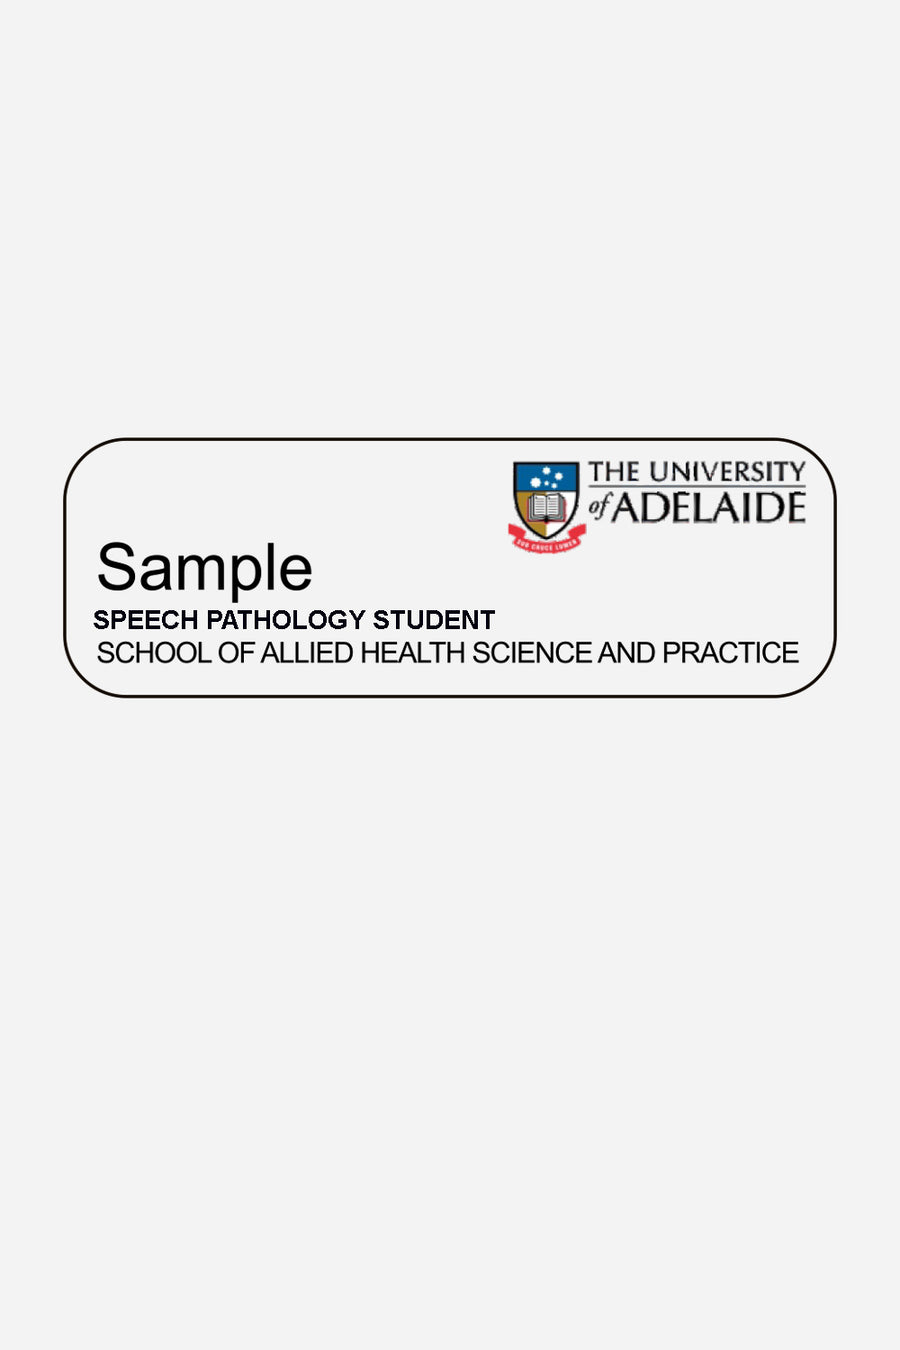 Speech Pathology student badge